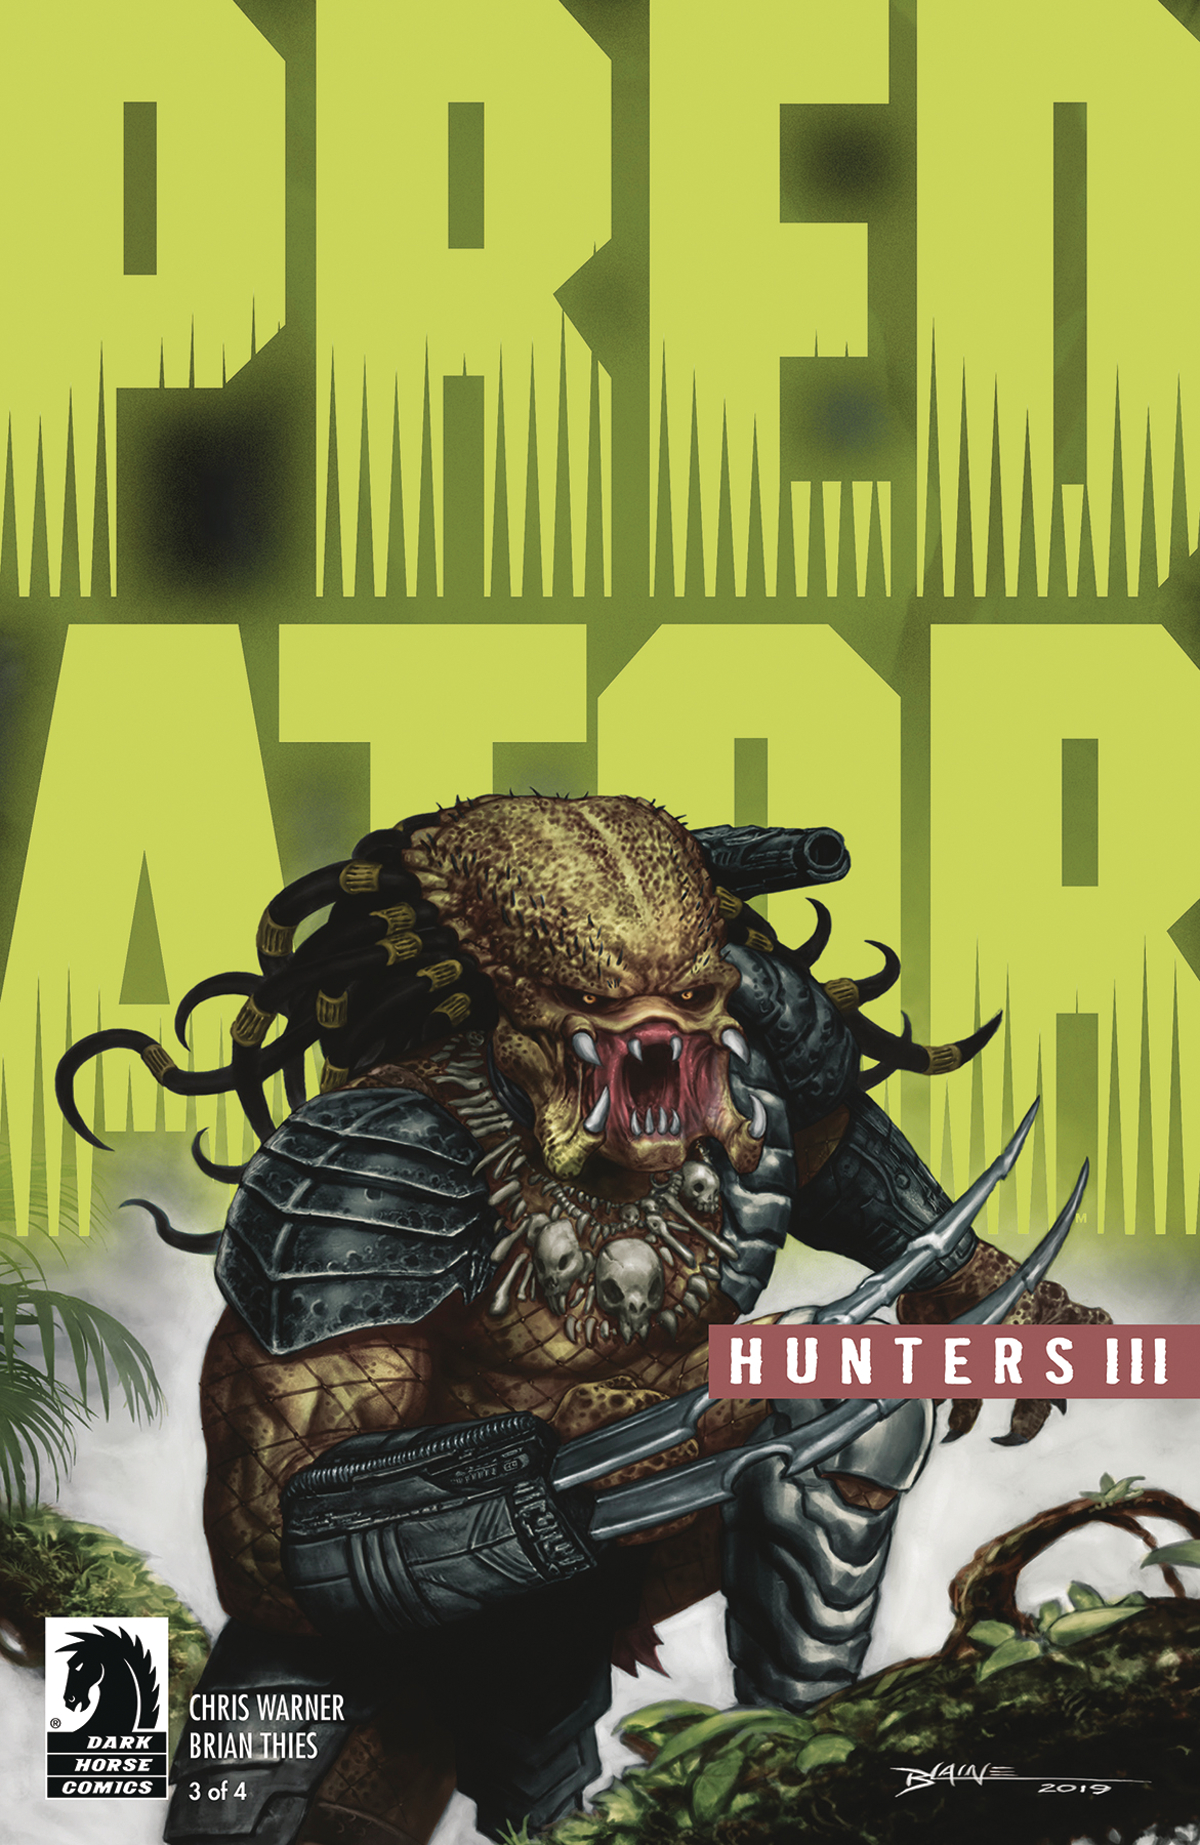 PREDATOR HUNTERS III #3 (OF 4) CVR B BLAINE GLOW DARK INK